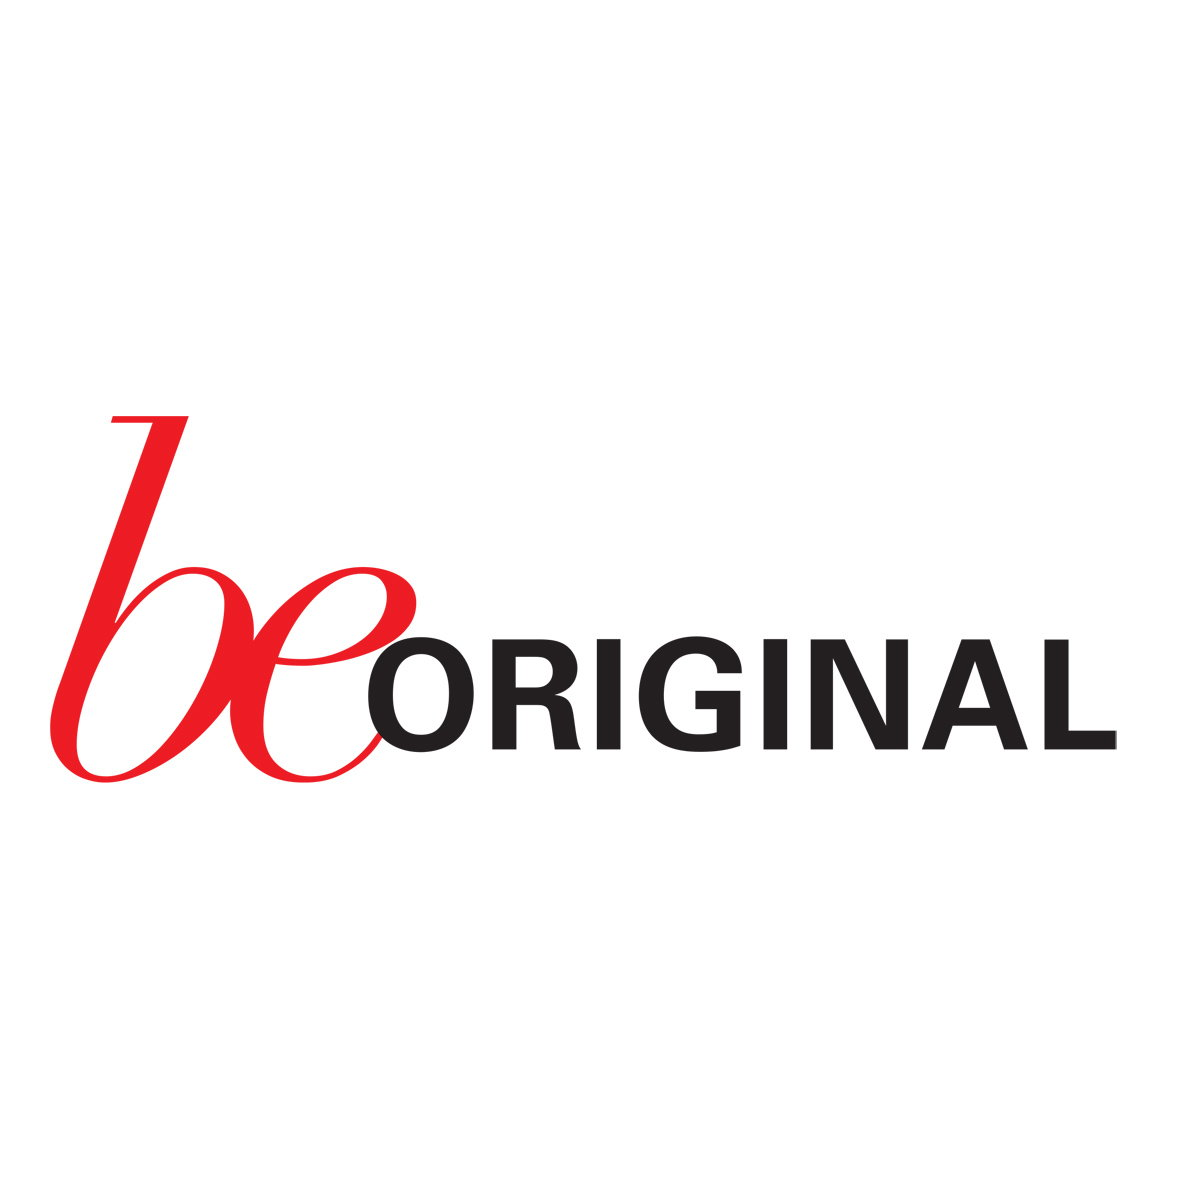 Be Original Americas 2018 Student Design Fellowship